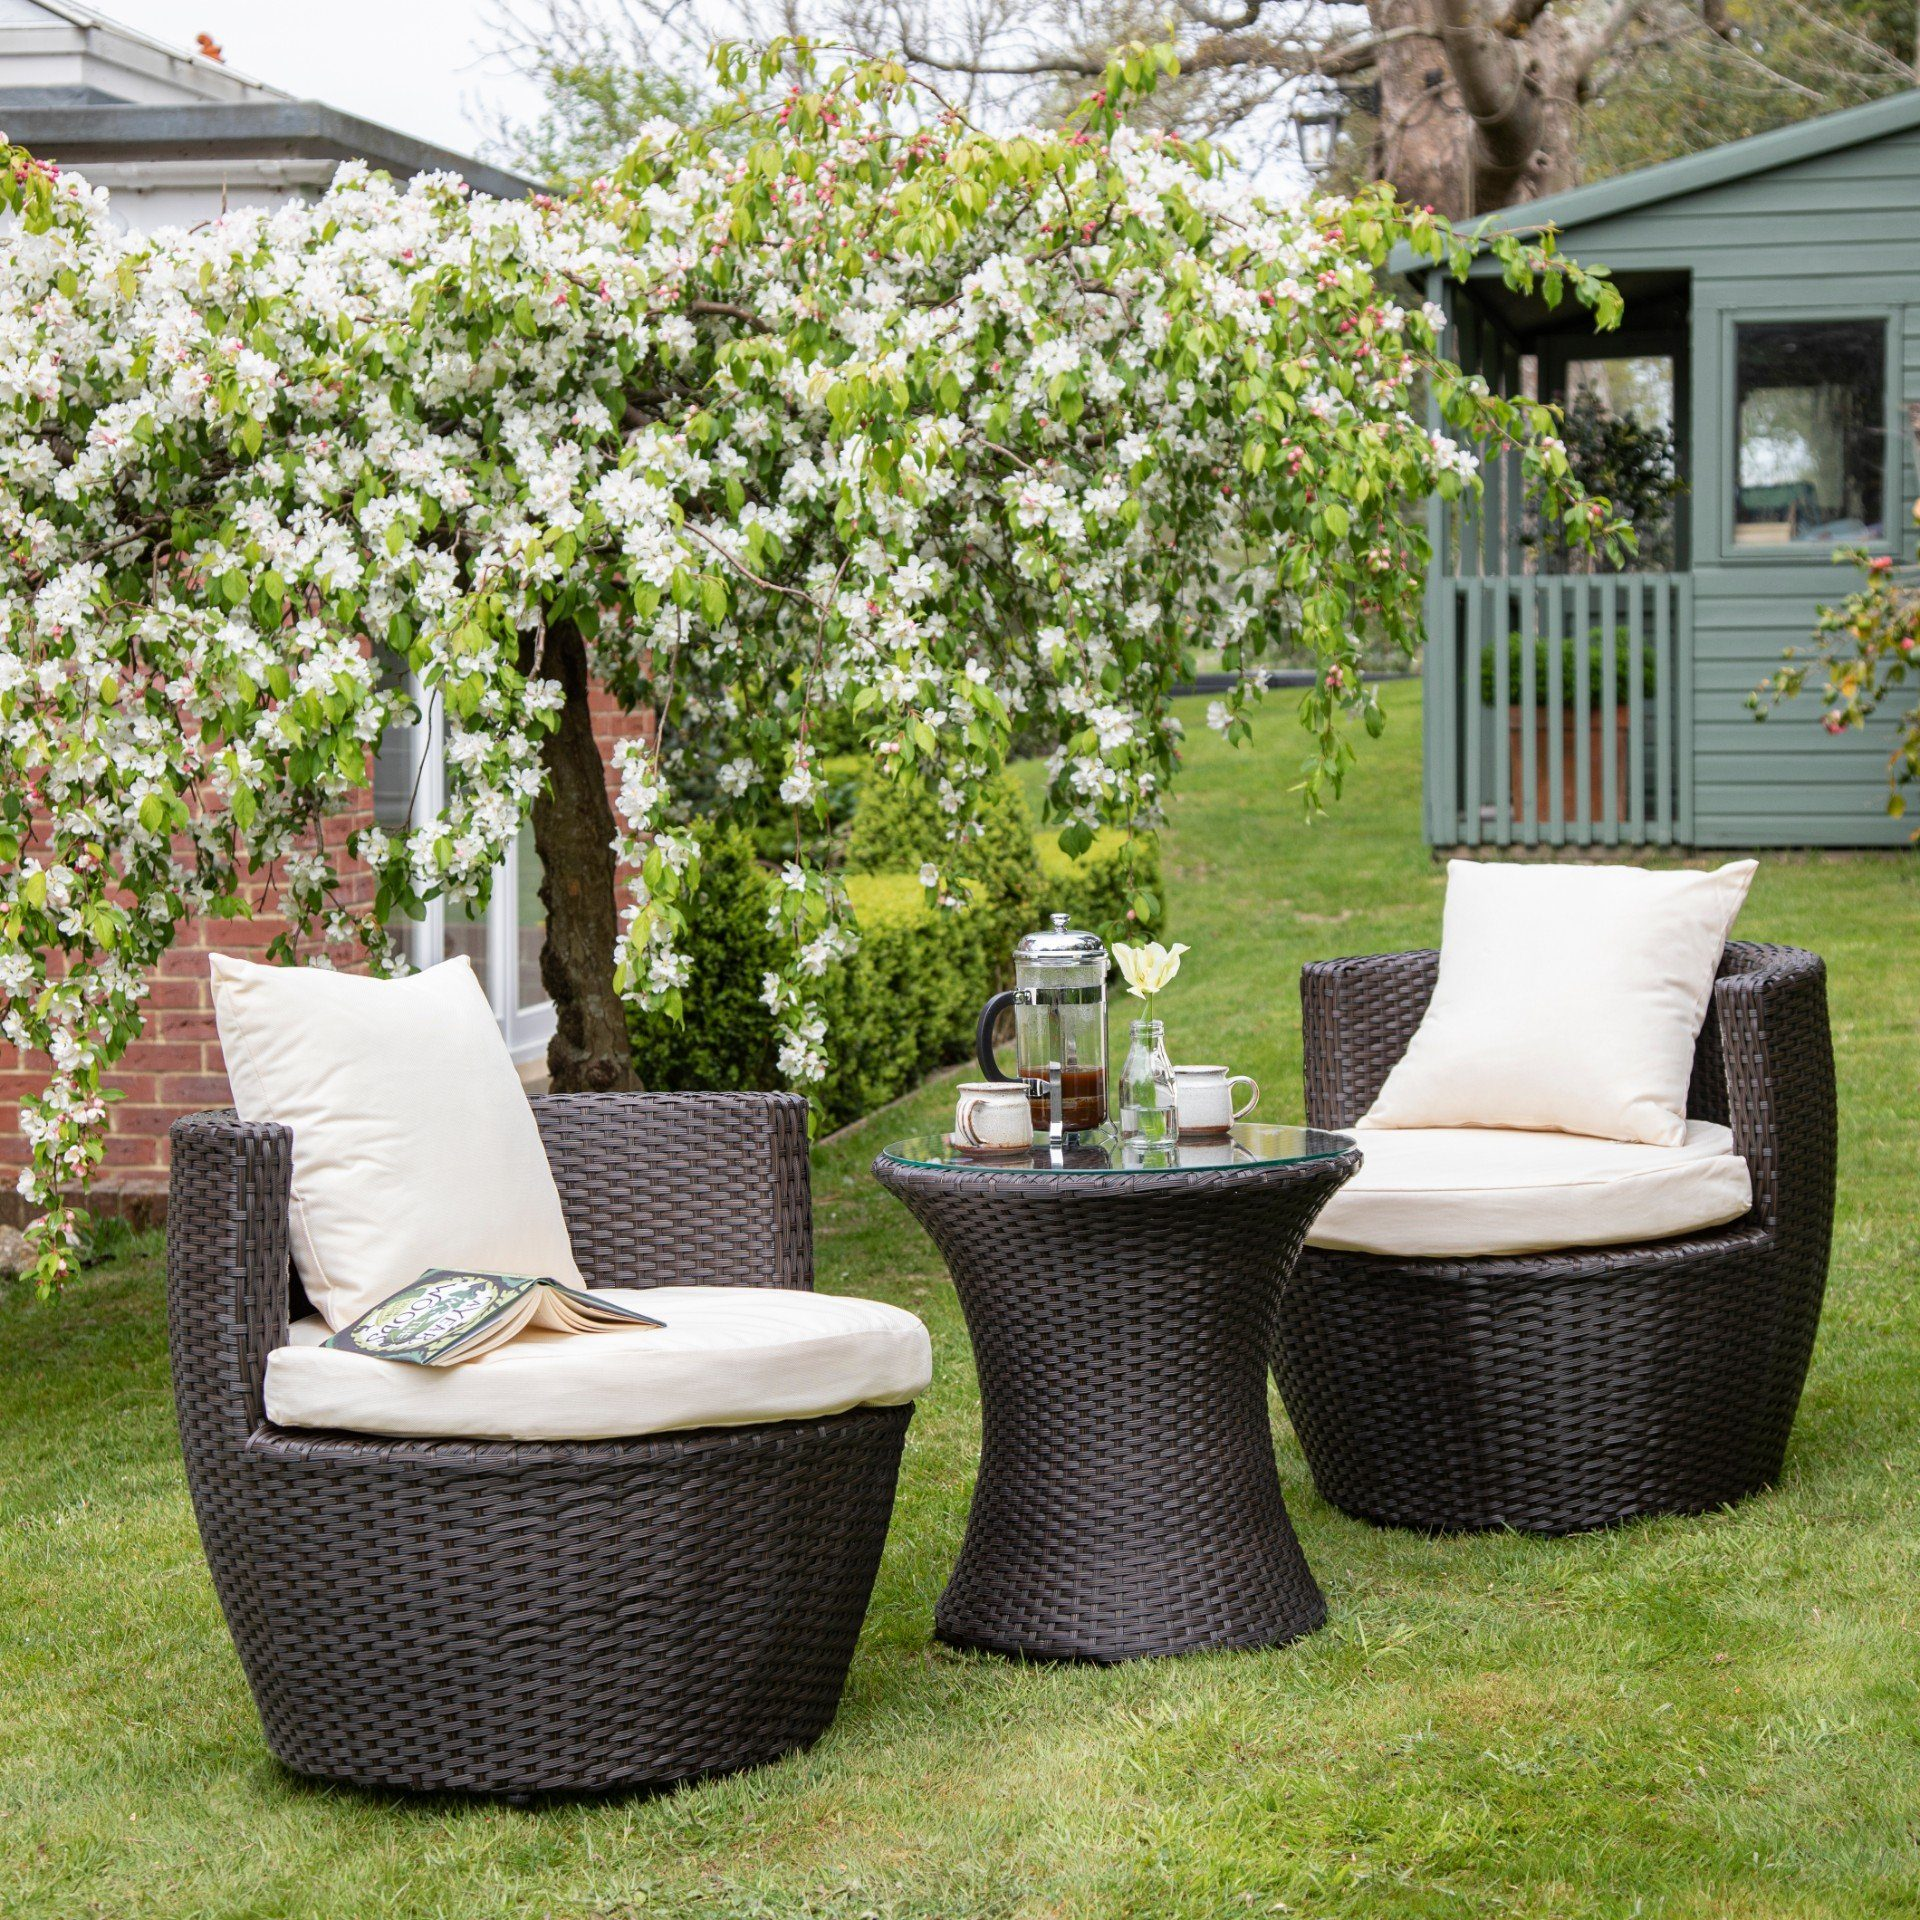 2 Seater Rattan Egg Chair Bistro Set - Brown - In Stock Date - 16th June 2020 - Laura James